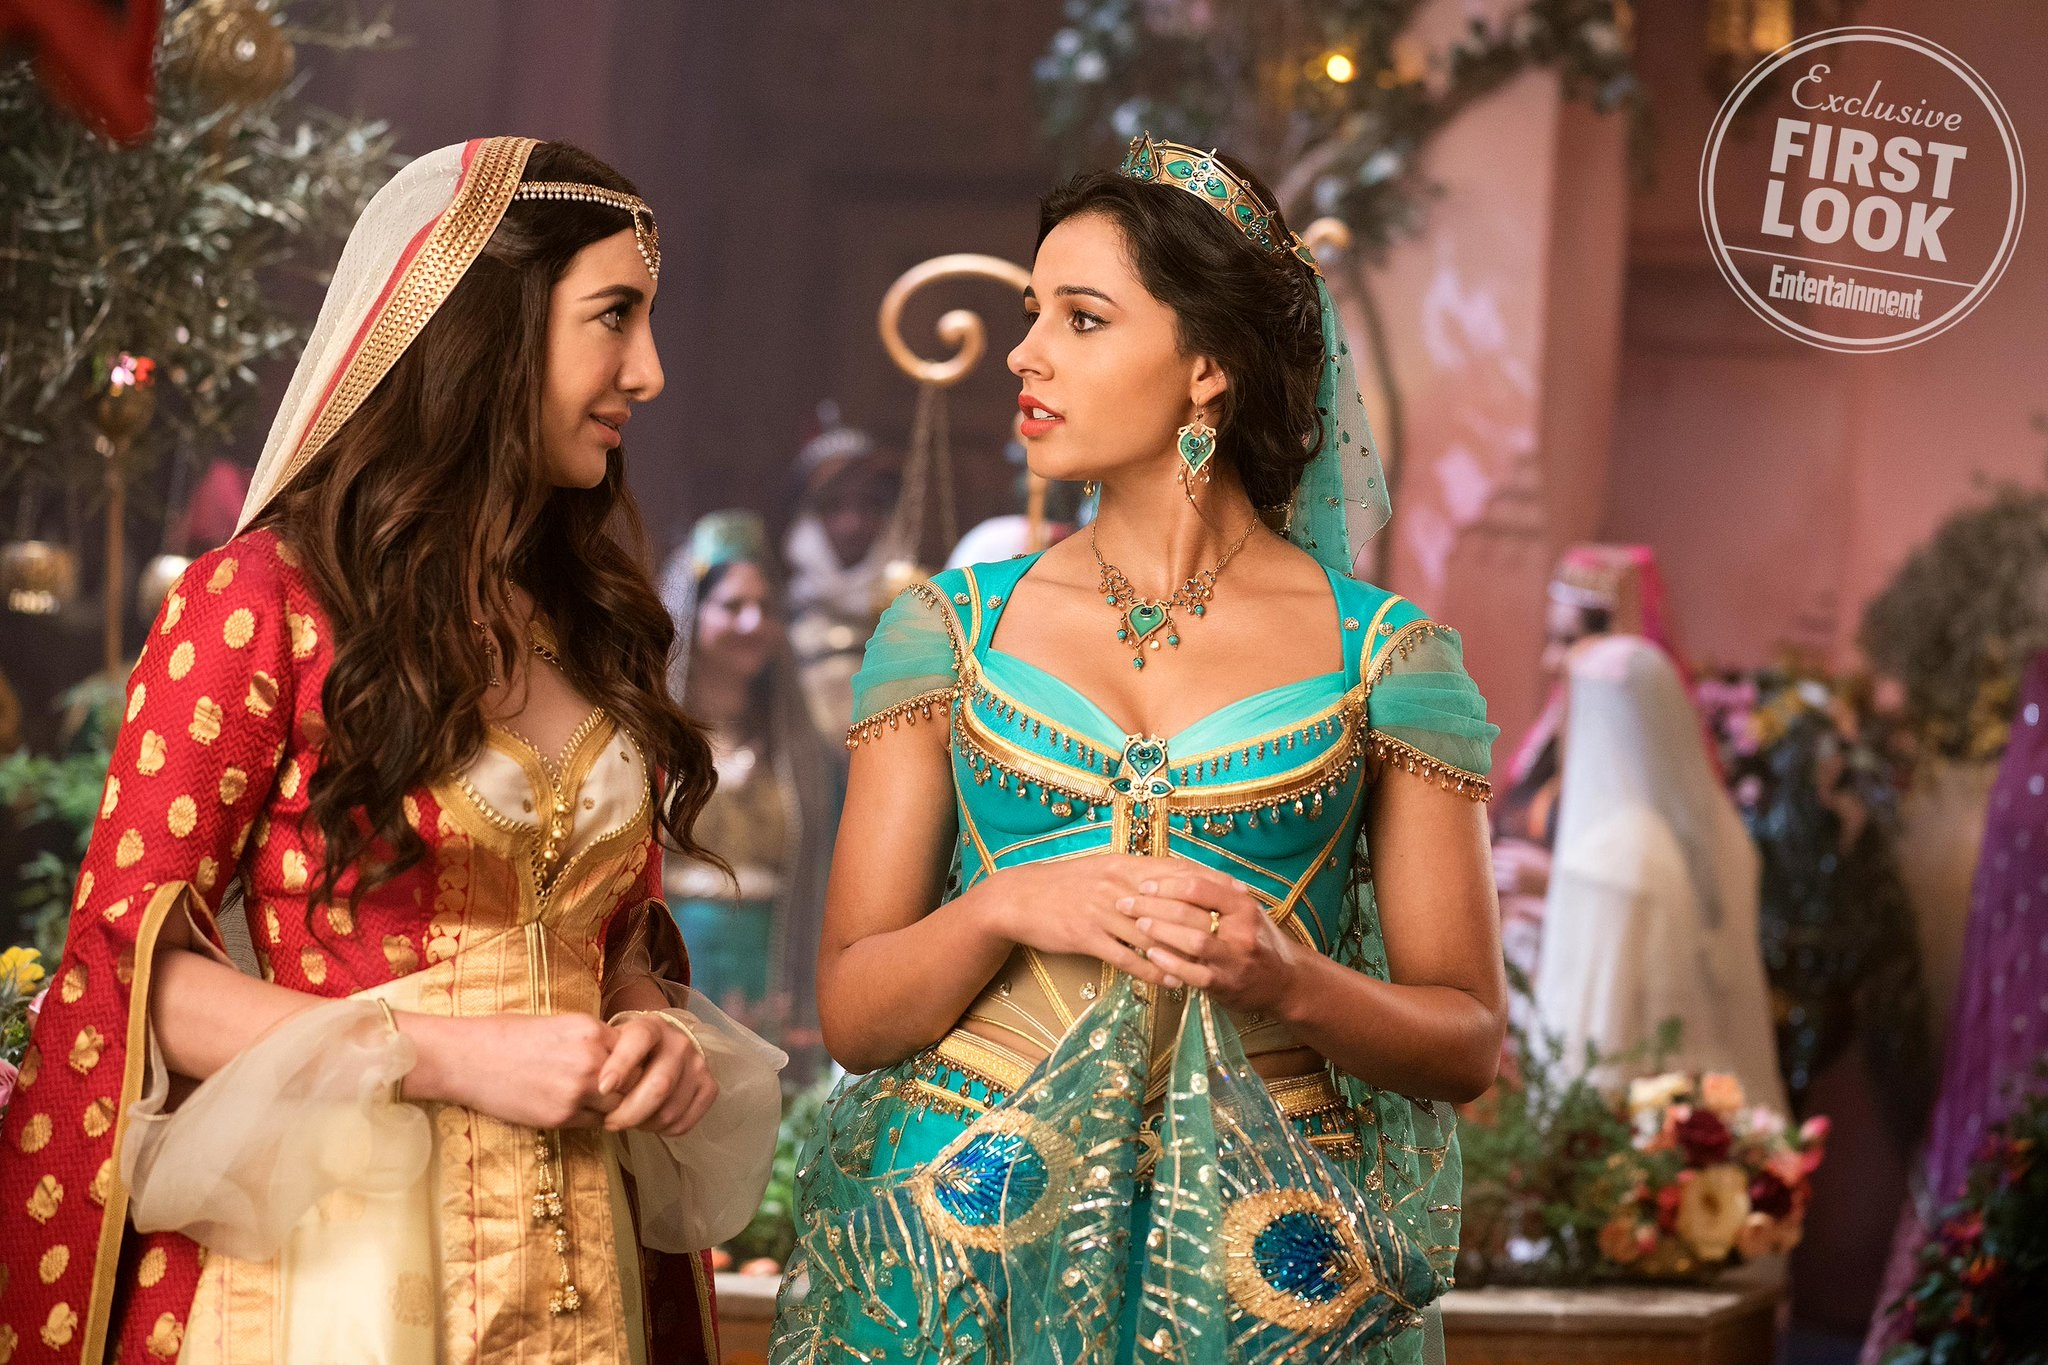 Aladdin 2019 promotional still